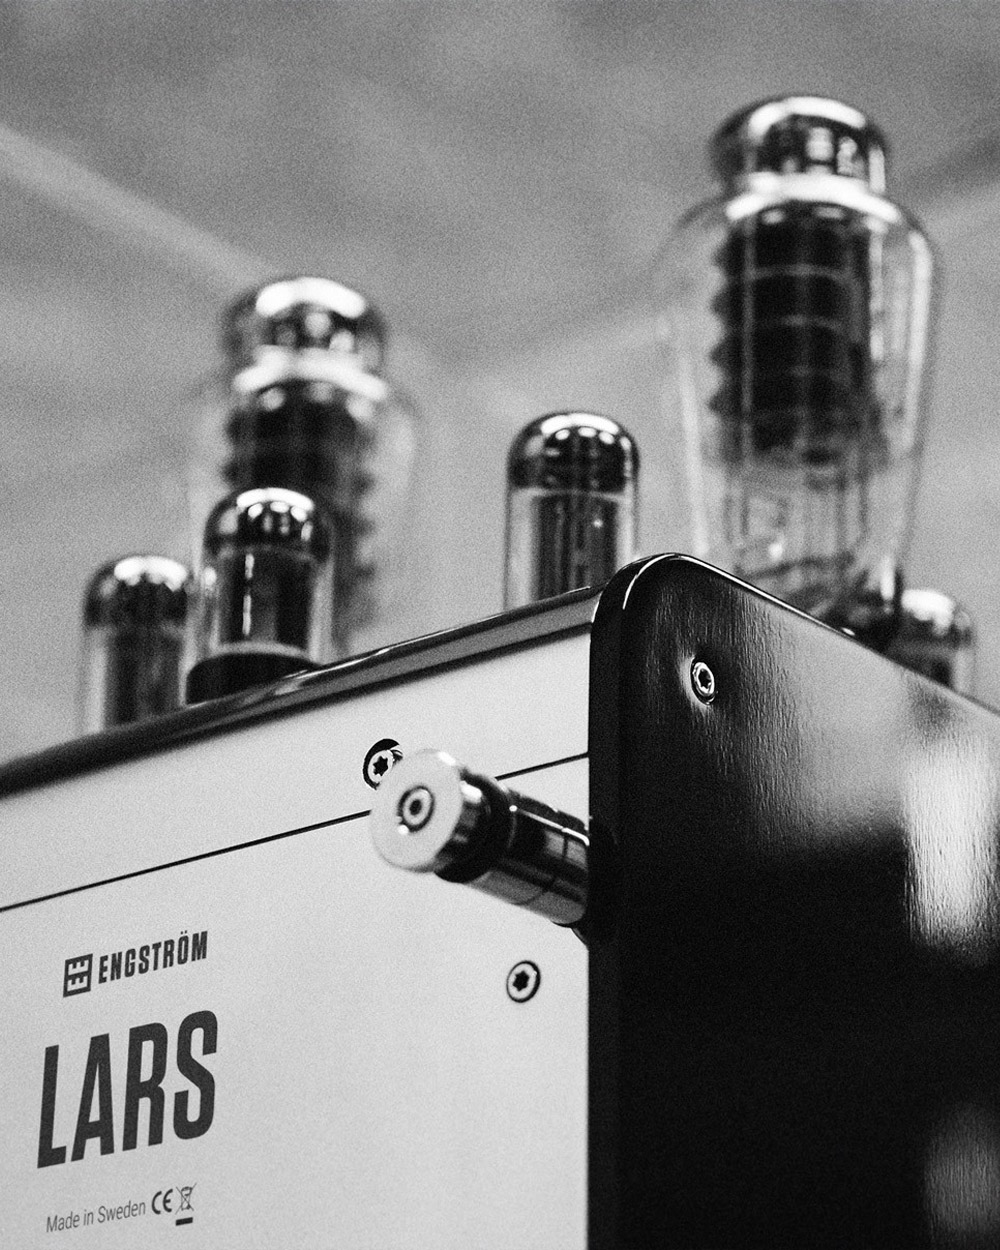 LARS - ..POWER AMPLIFIERNamed after our co-founder Lars Engström, LARS is our critically acclaimed power amplifier. Each unit features the world's best components and materials, hand-selected by Lars himself, alongside our own custom parts.View Lars